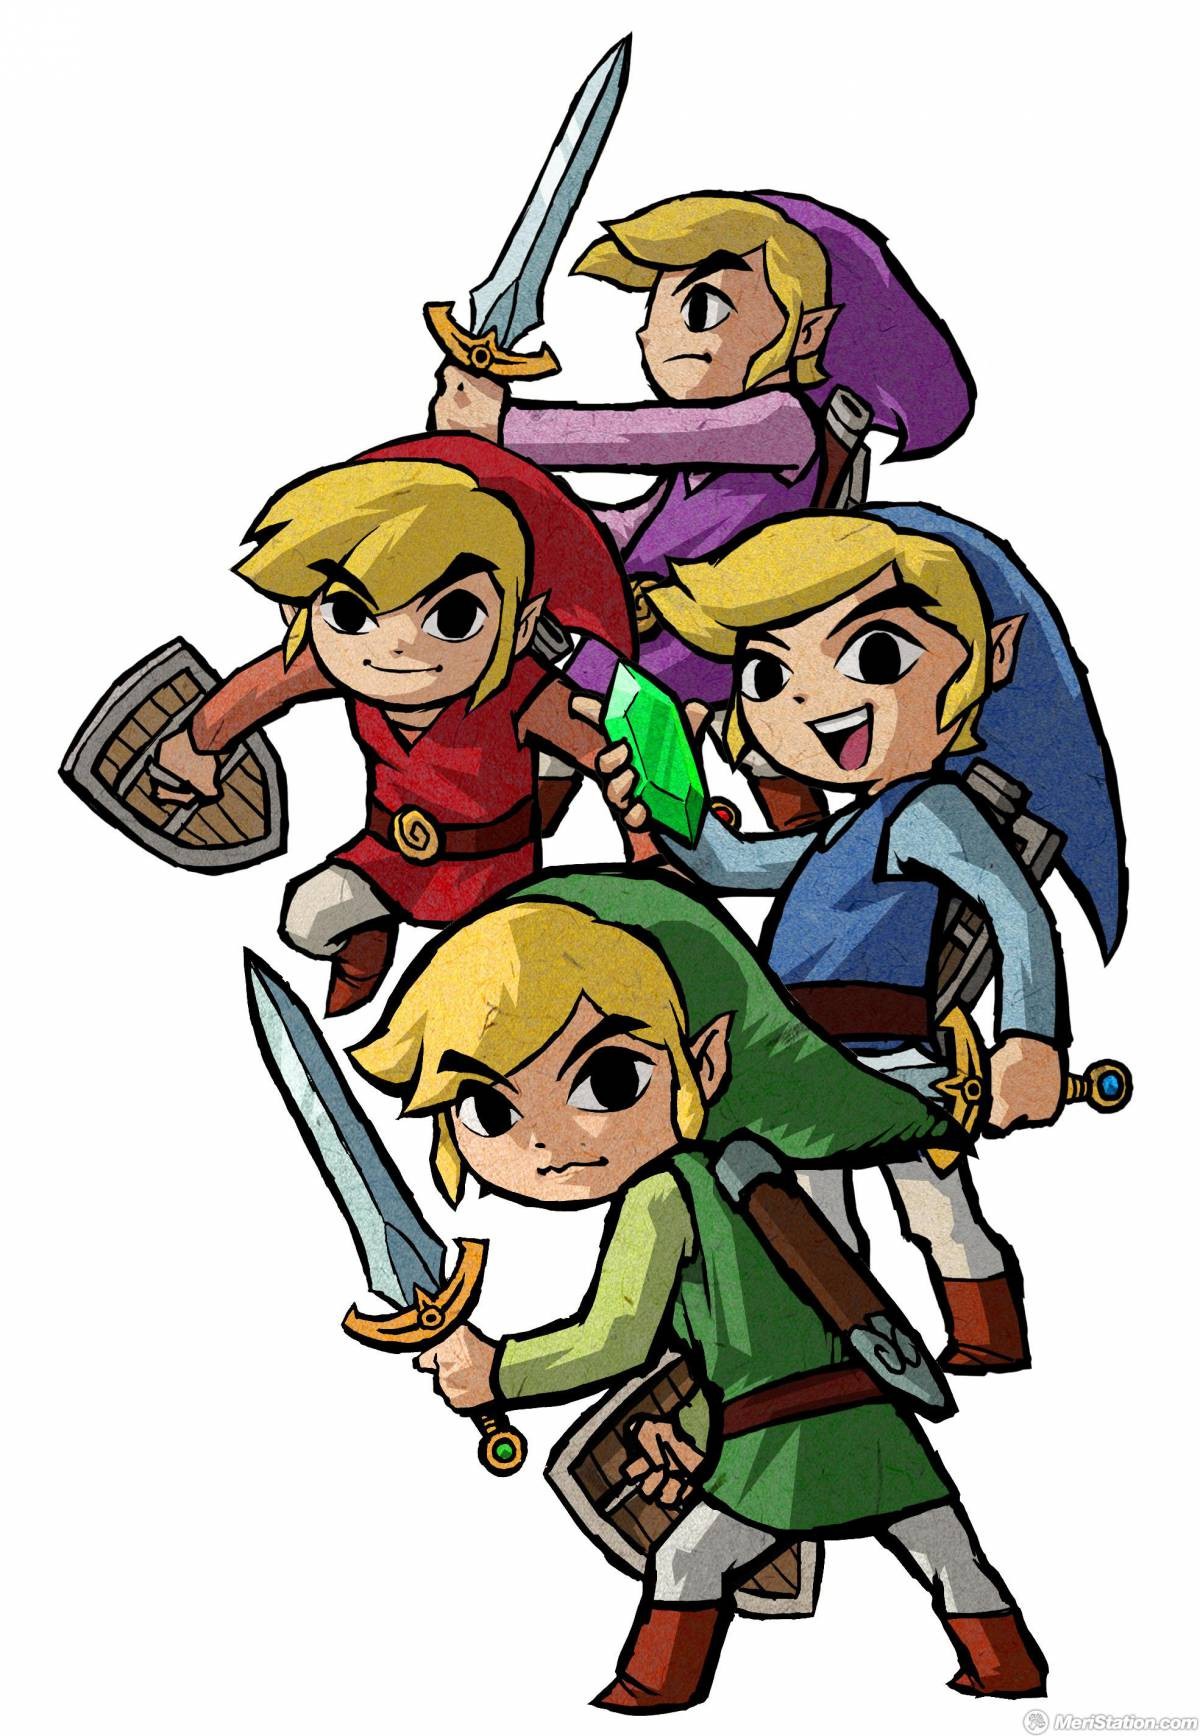 The Legend of Zelda: Four Swords